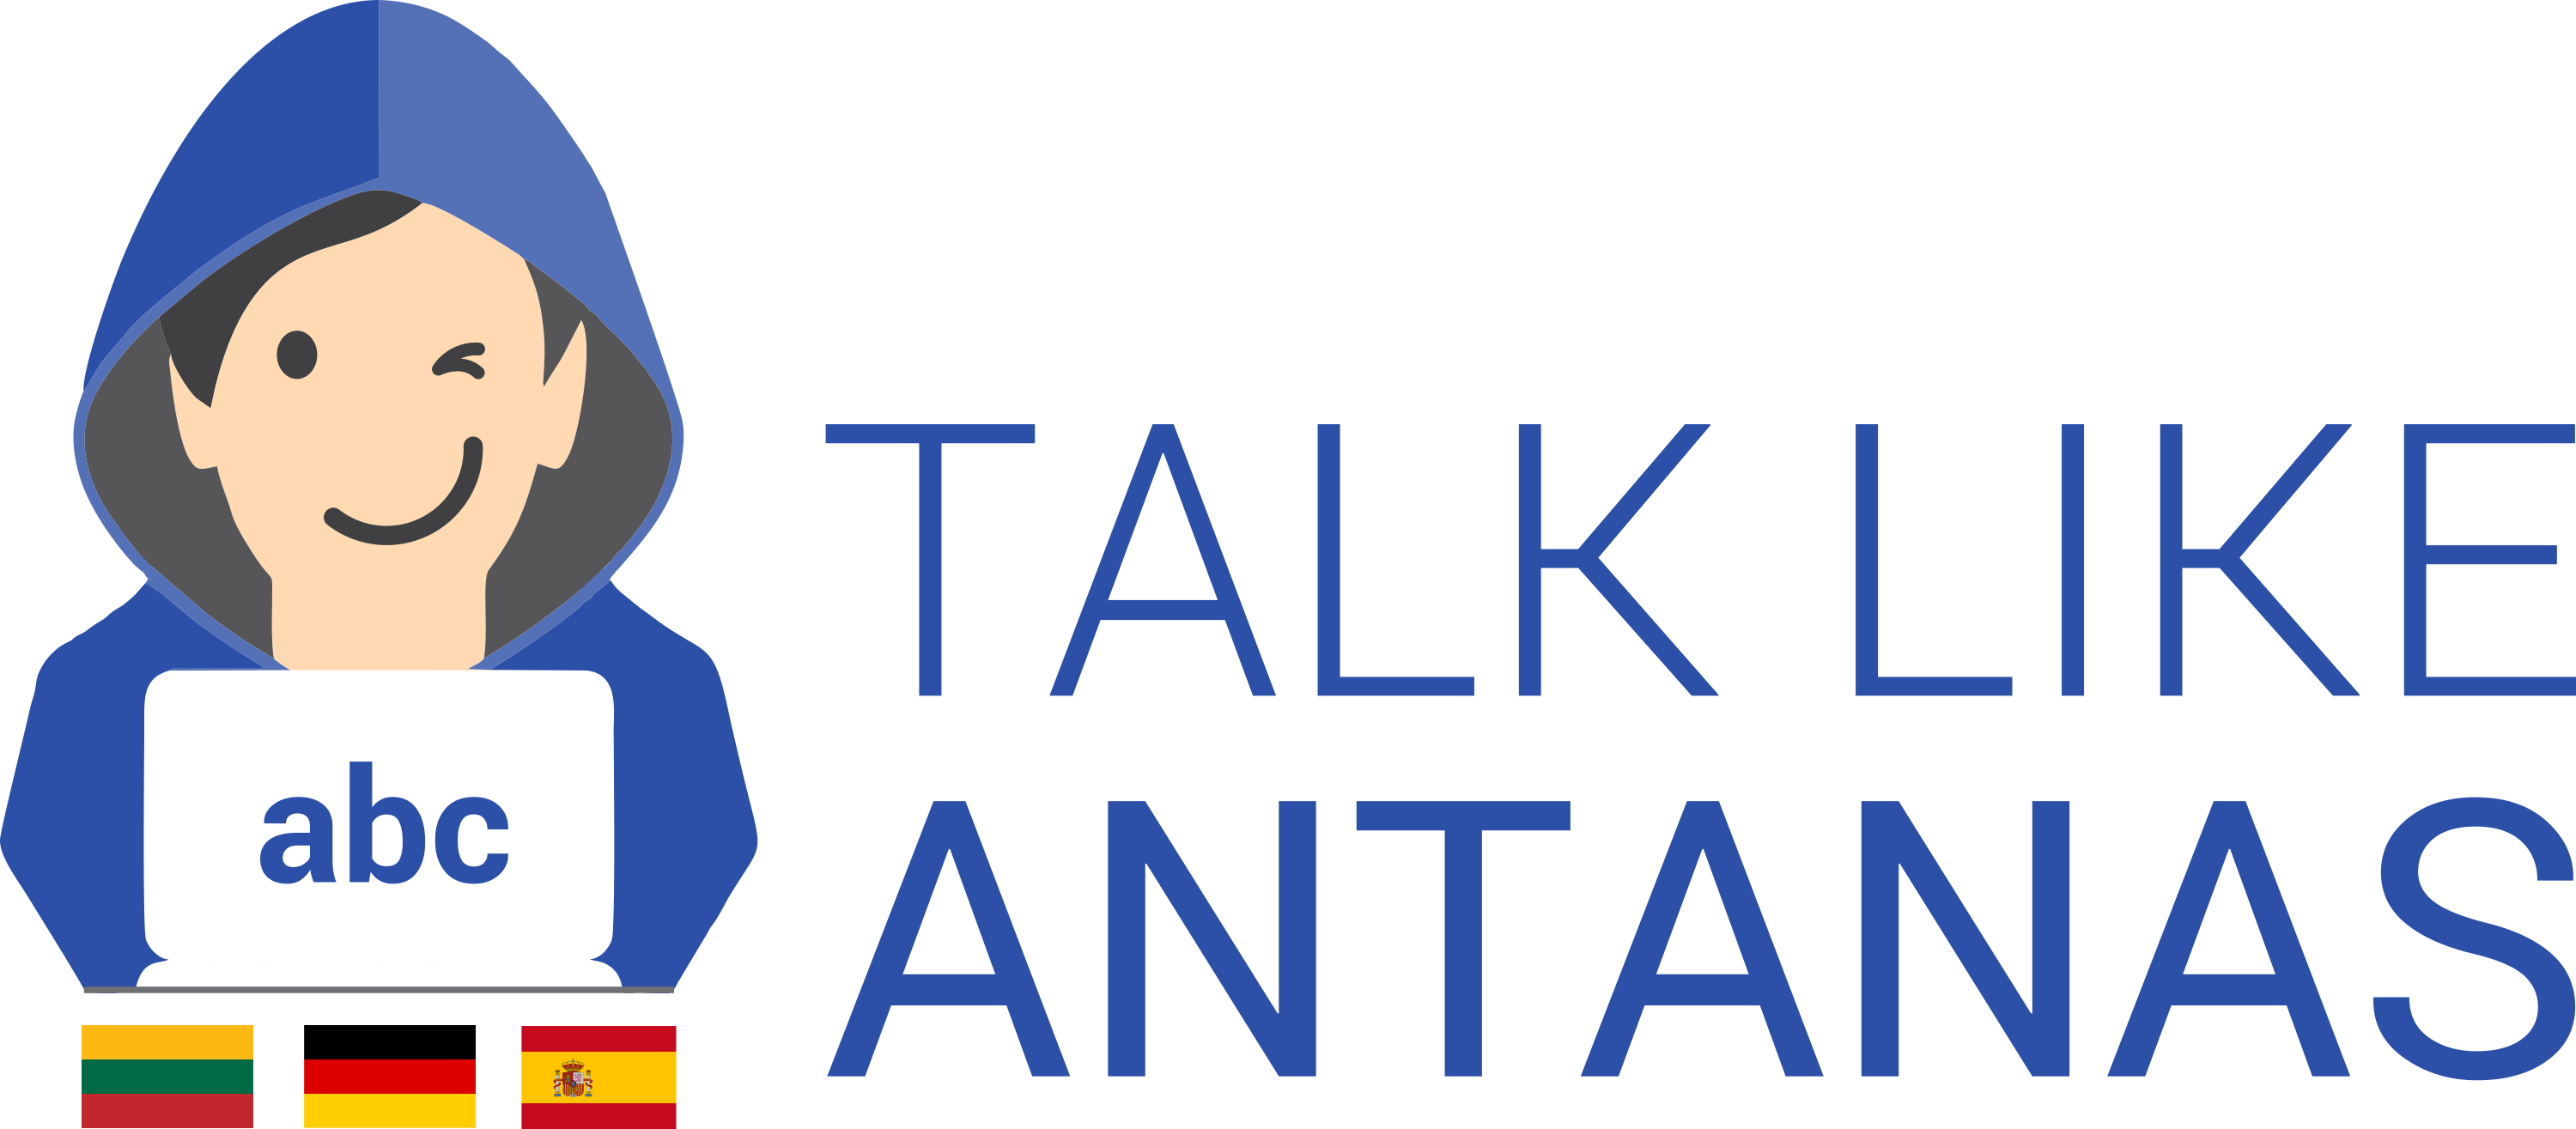 Talk like Antanas